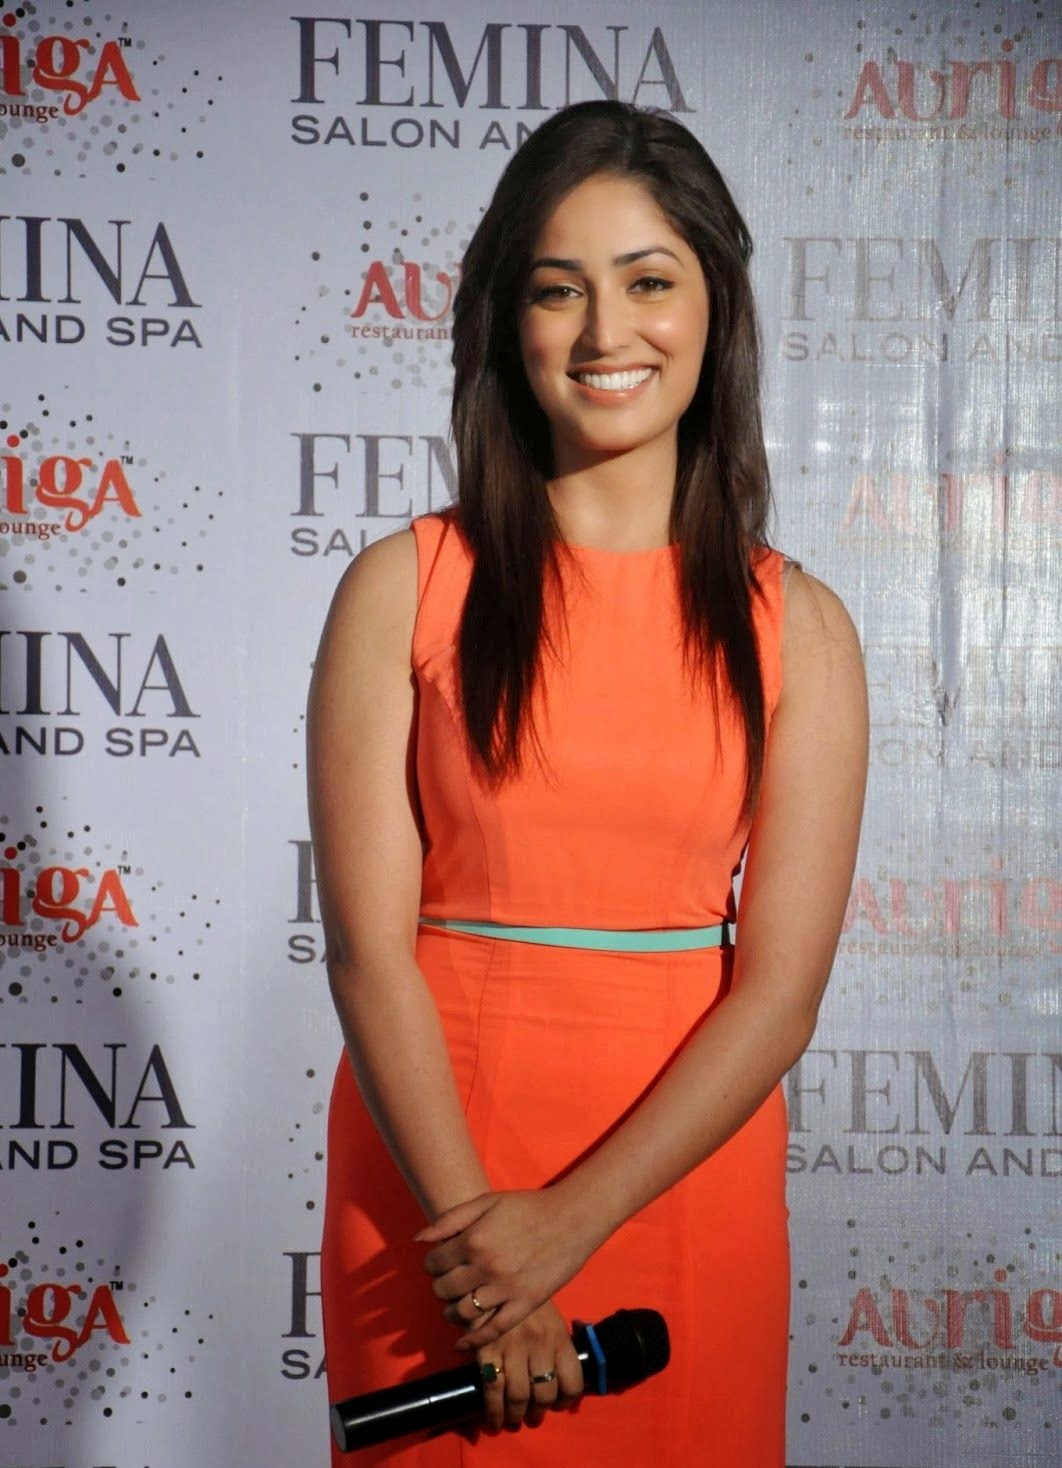 Actress, Bollywood, Bollywood actress, Entertainment, FEMINA, India, Launch, Magazine, Mumbai, Salon, Showbiz, Spa, Yami Gautam, Yami Gautam Pictures,